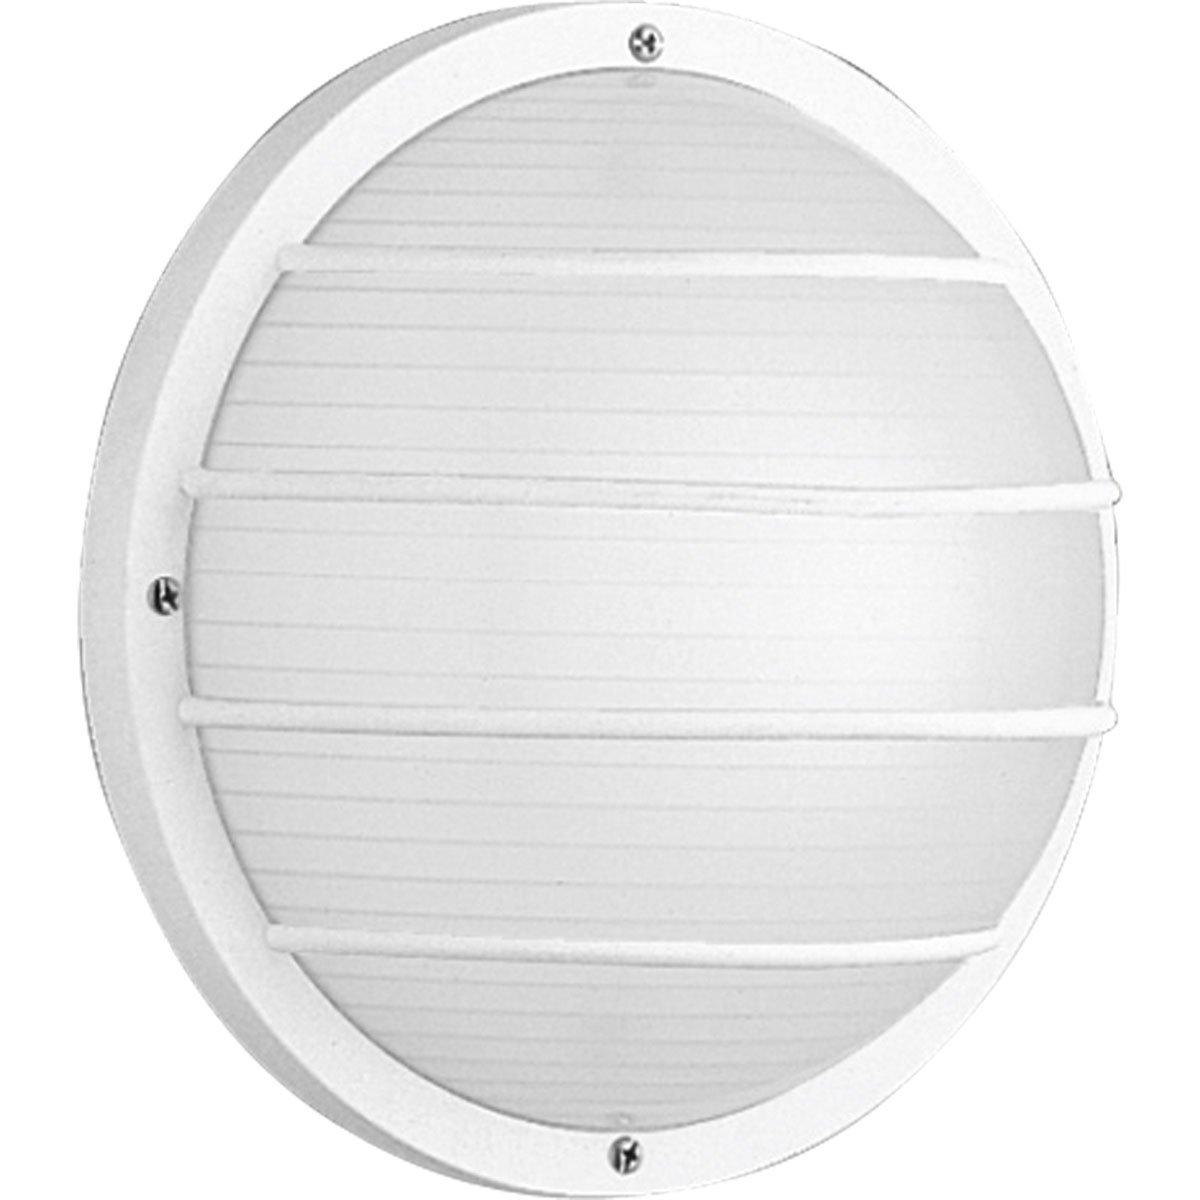 Progress Lighting P5703-30 Polycarbonate Light Mounted On Walls Or Ceilings Indoors or Outdoors with No Color Fade, White